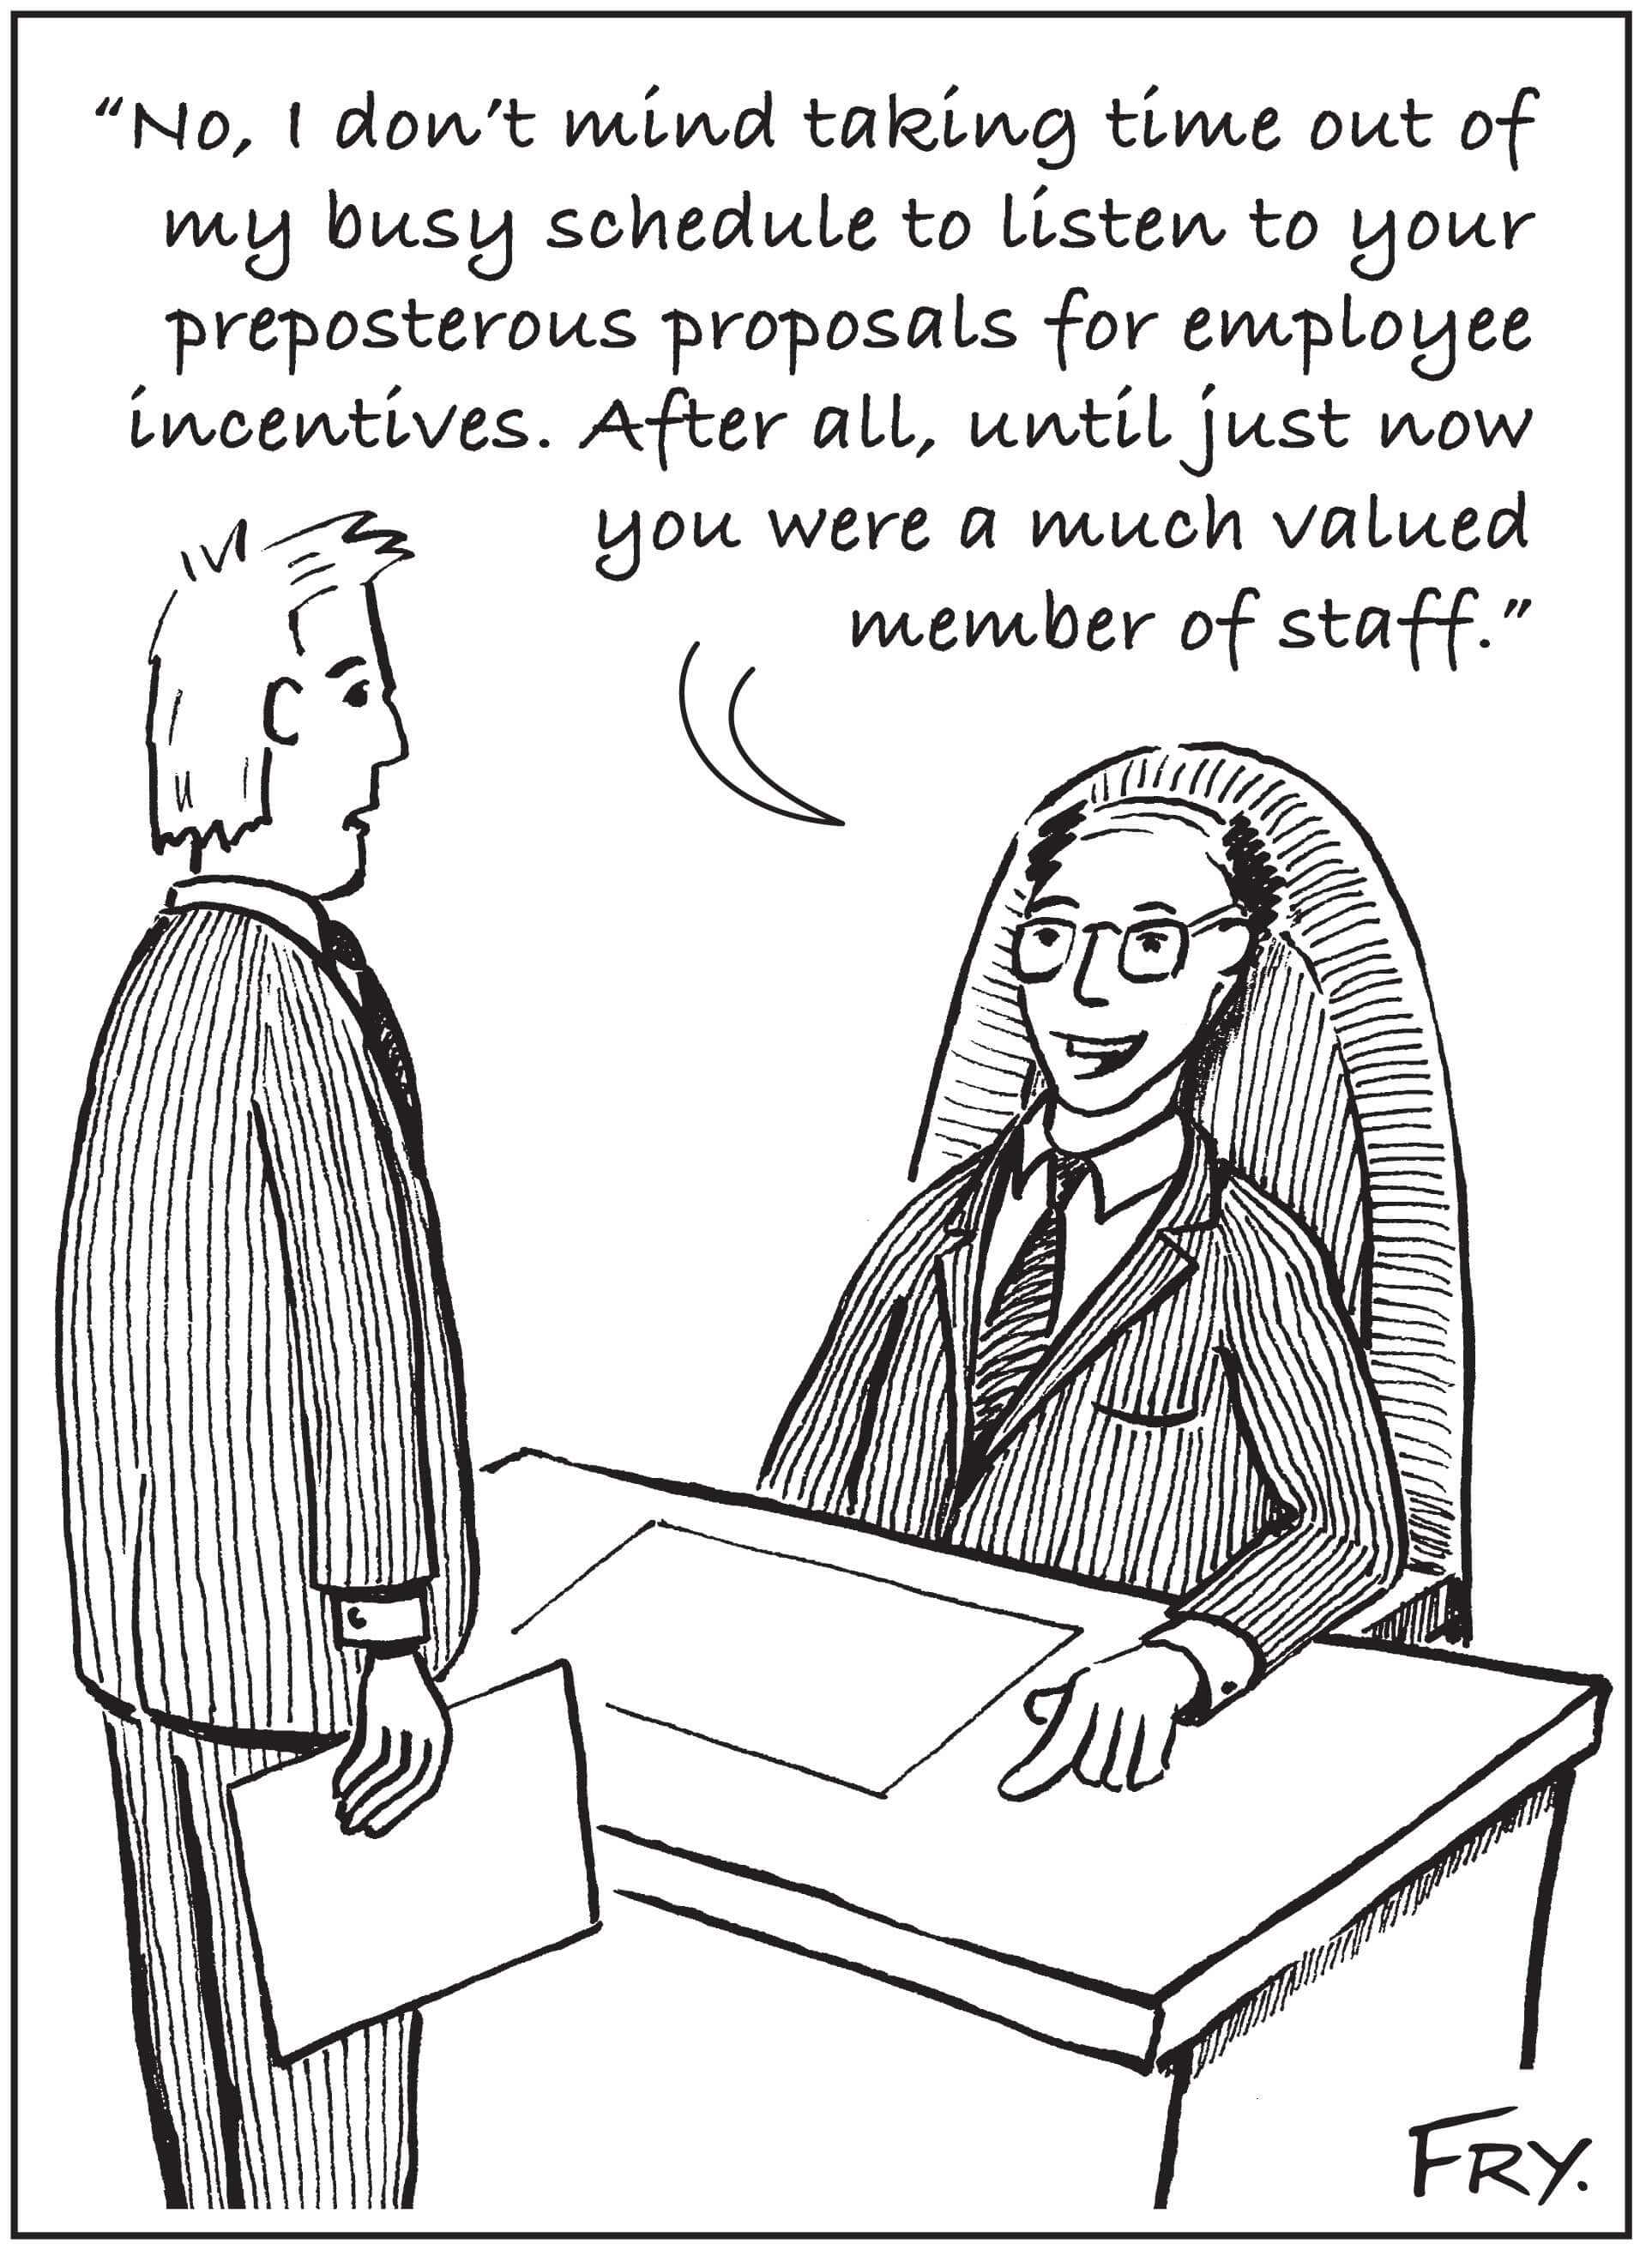 Employee Incentives Humor February 2014